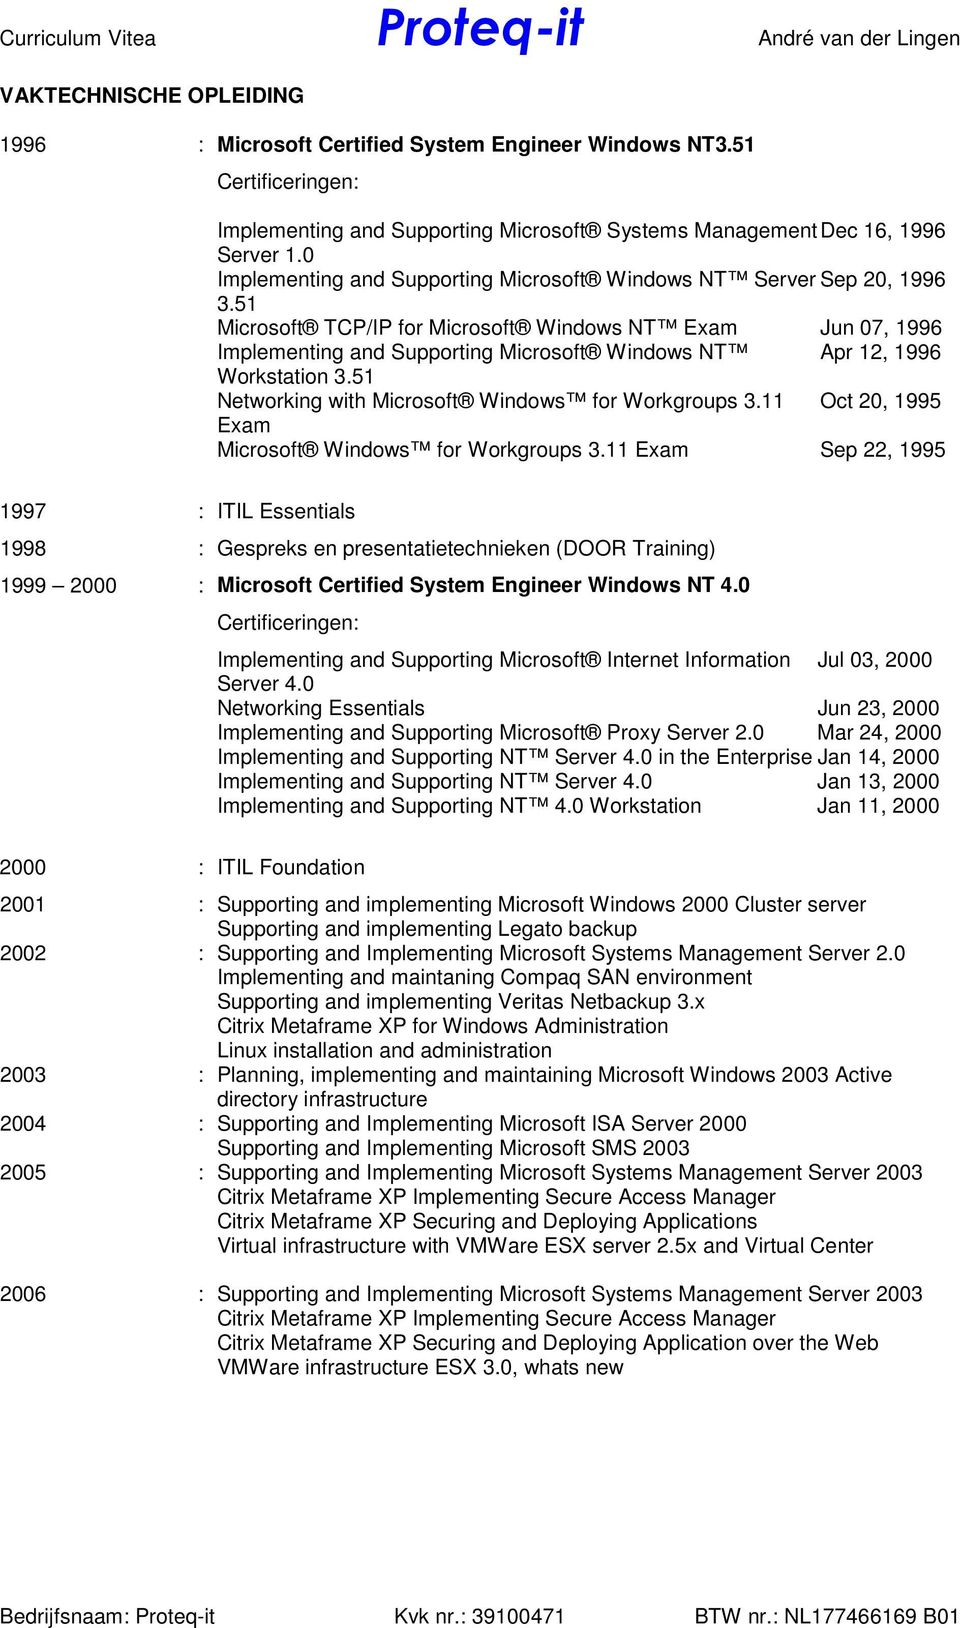 51 Microsoft TCP/IP for Microsoft Windows NT Exam Jun 07, 1996 Implementing and Supporting Microsoft Windows NT Apr 12, 1996 Workstation 3.51 Networking with Microsoft Windows for Workgroups 3.